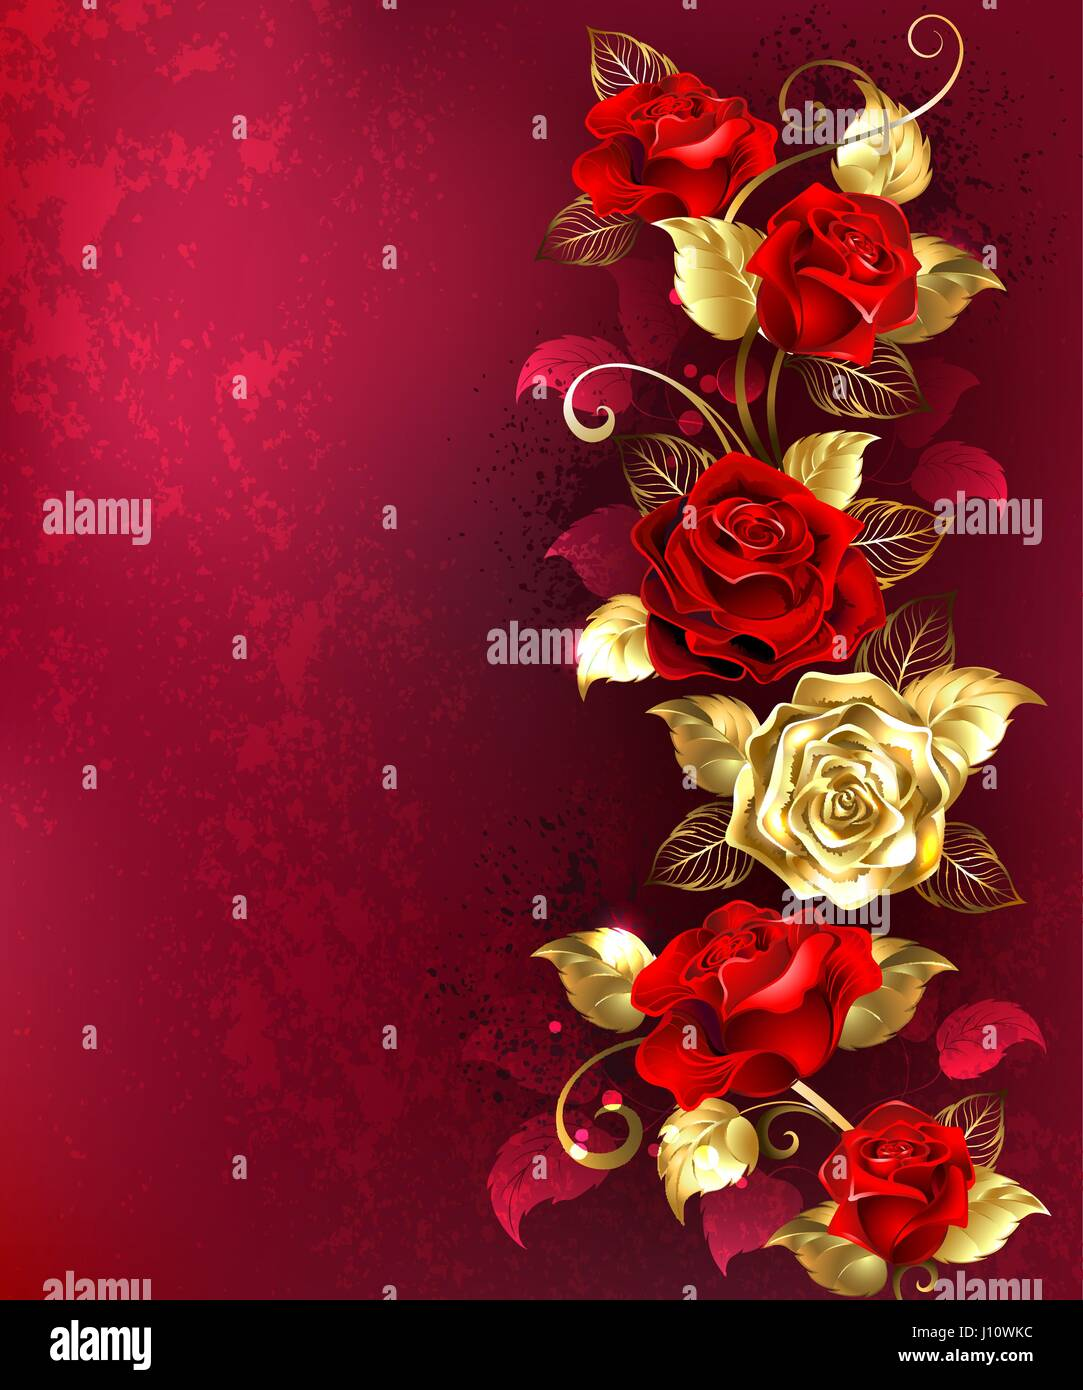 Vertical composition of red and gold jewelry roses with gold leaves